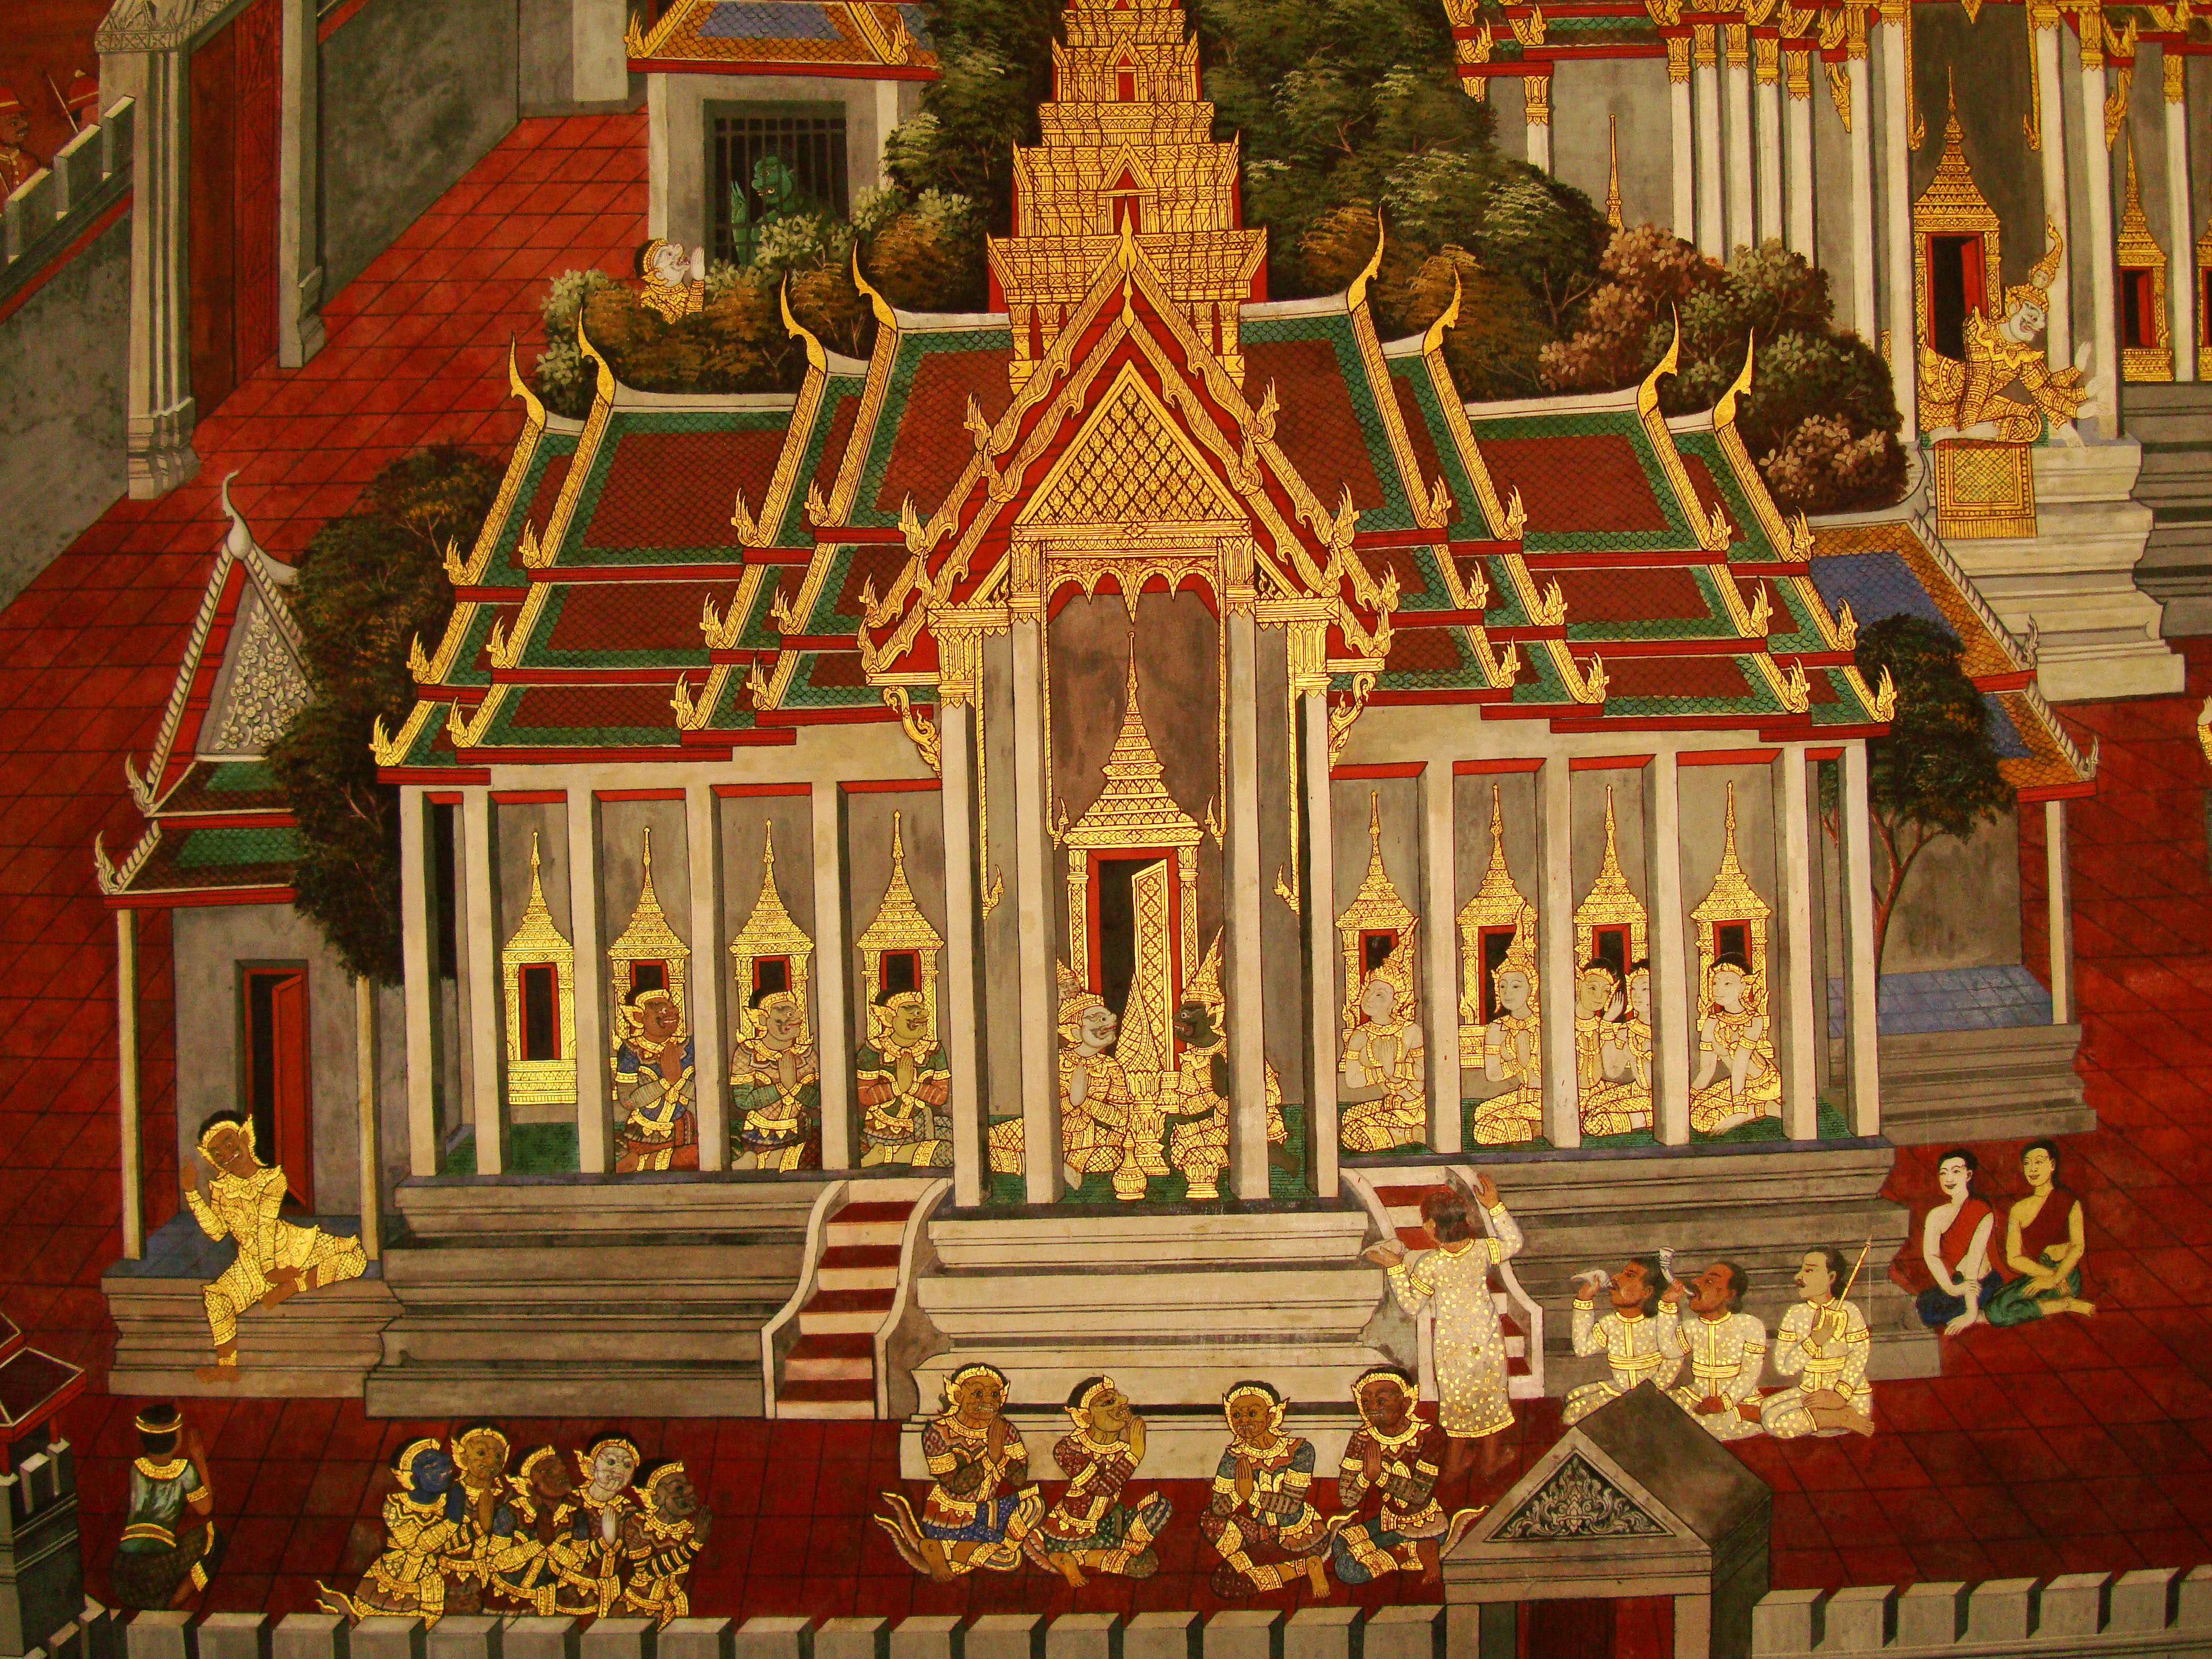 Grand Palace Gold leaf Buddhist artwork Bangkok Thailand 08